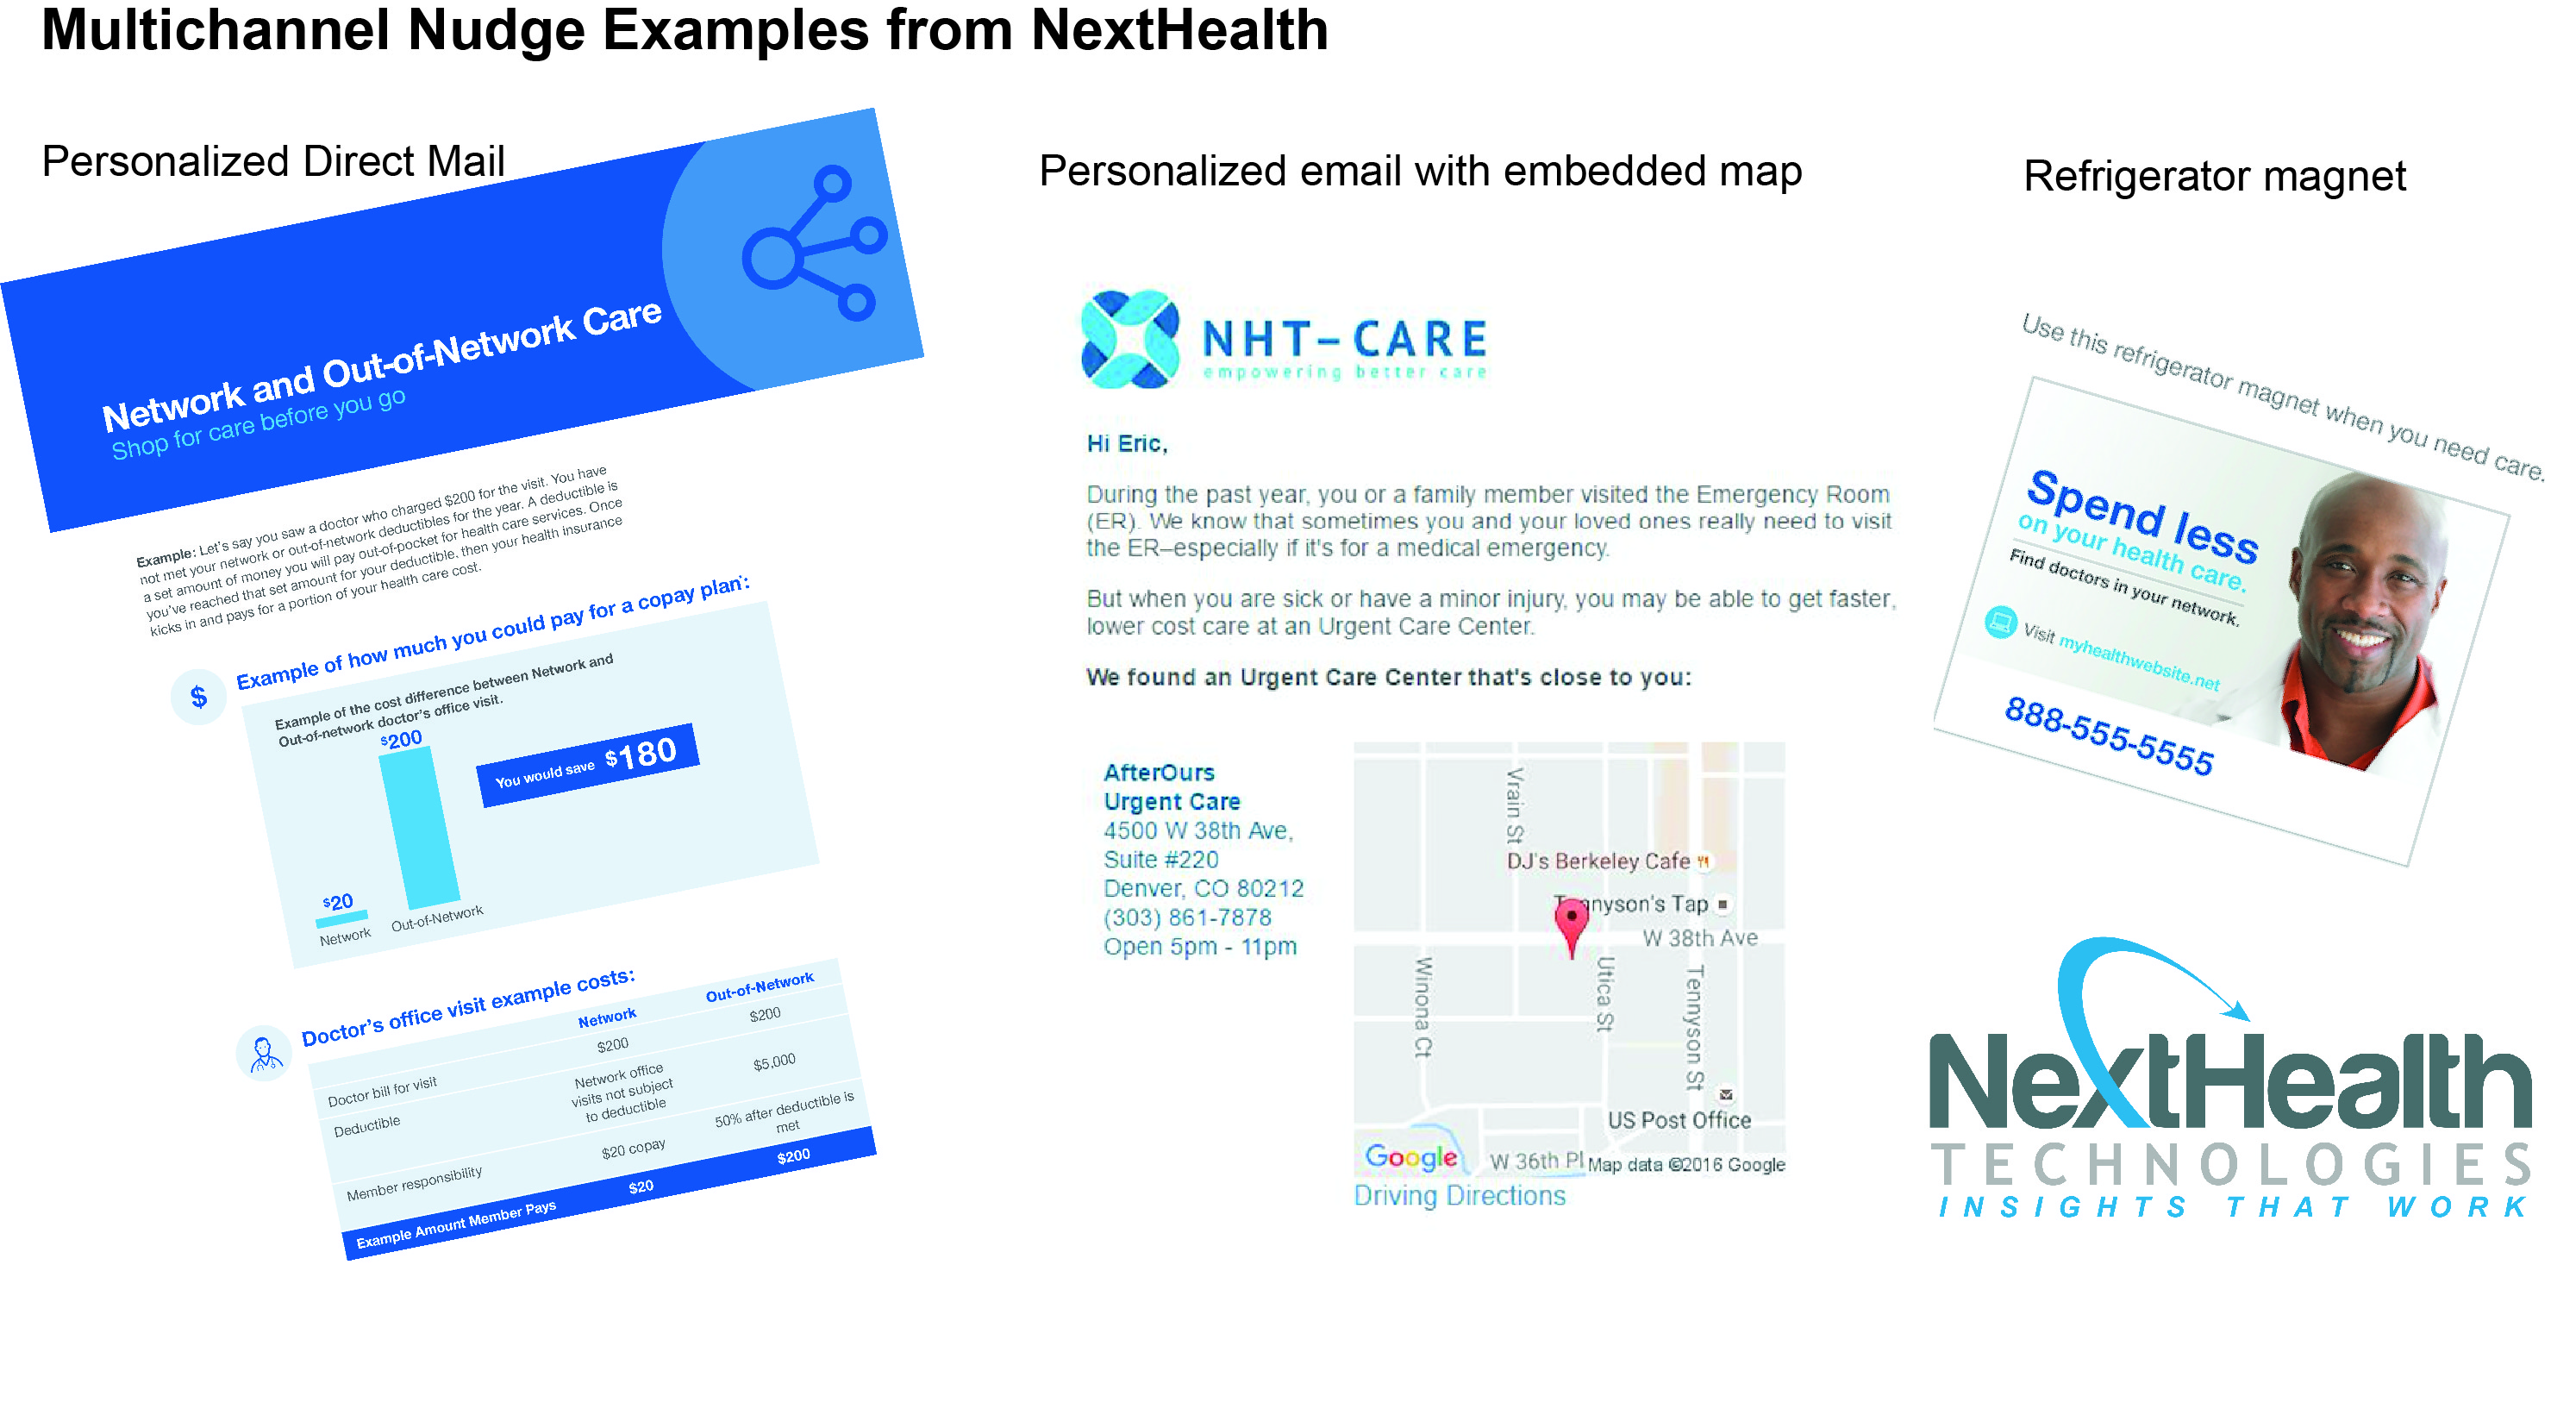 NHT Nudge Examples